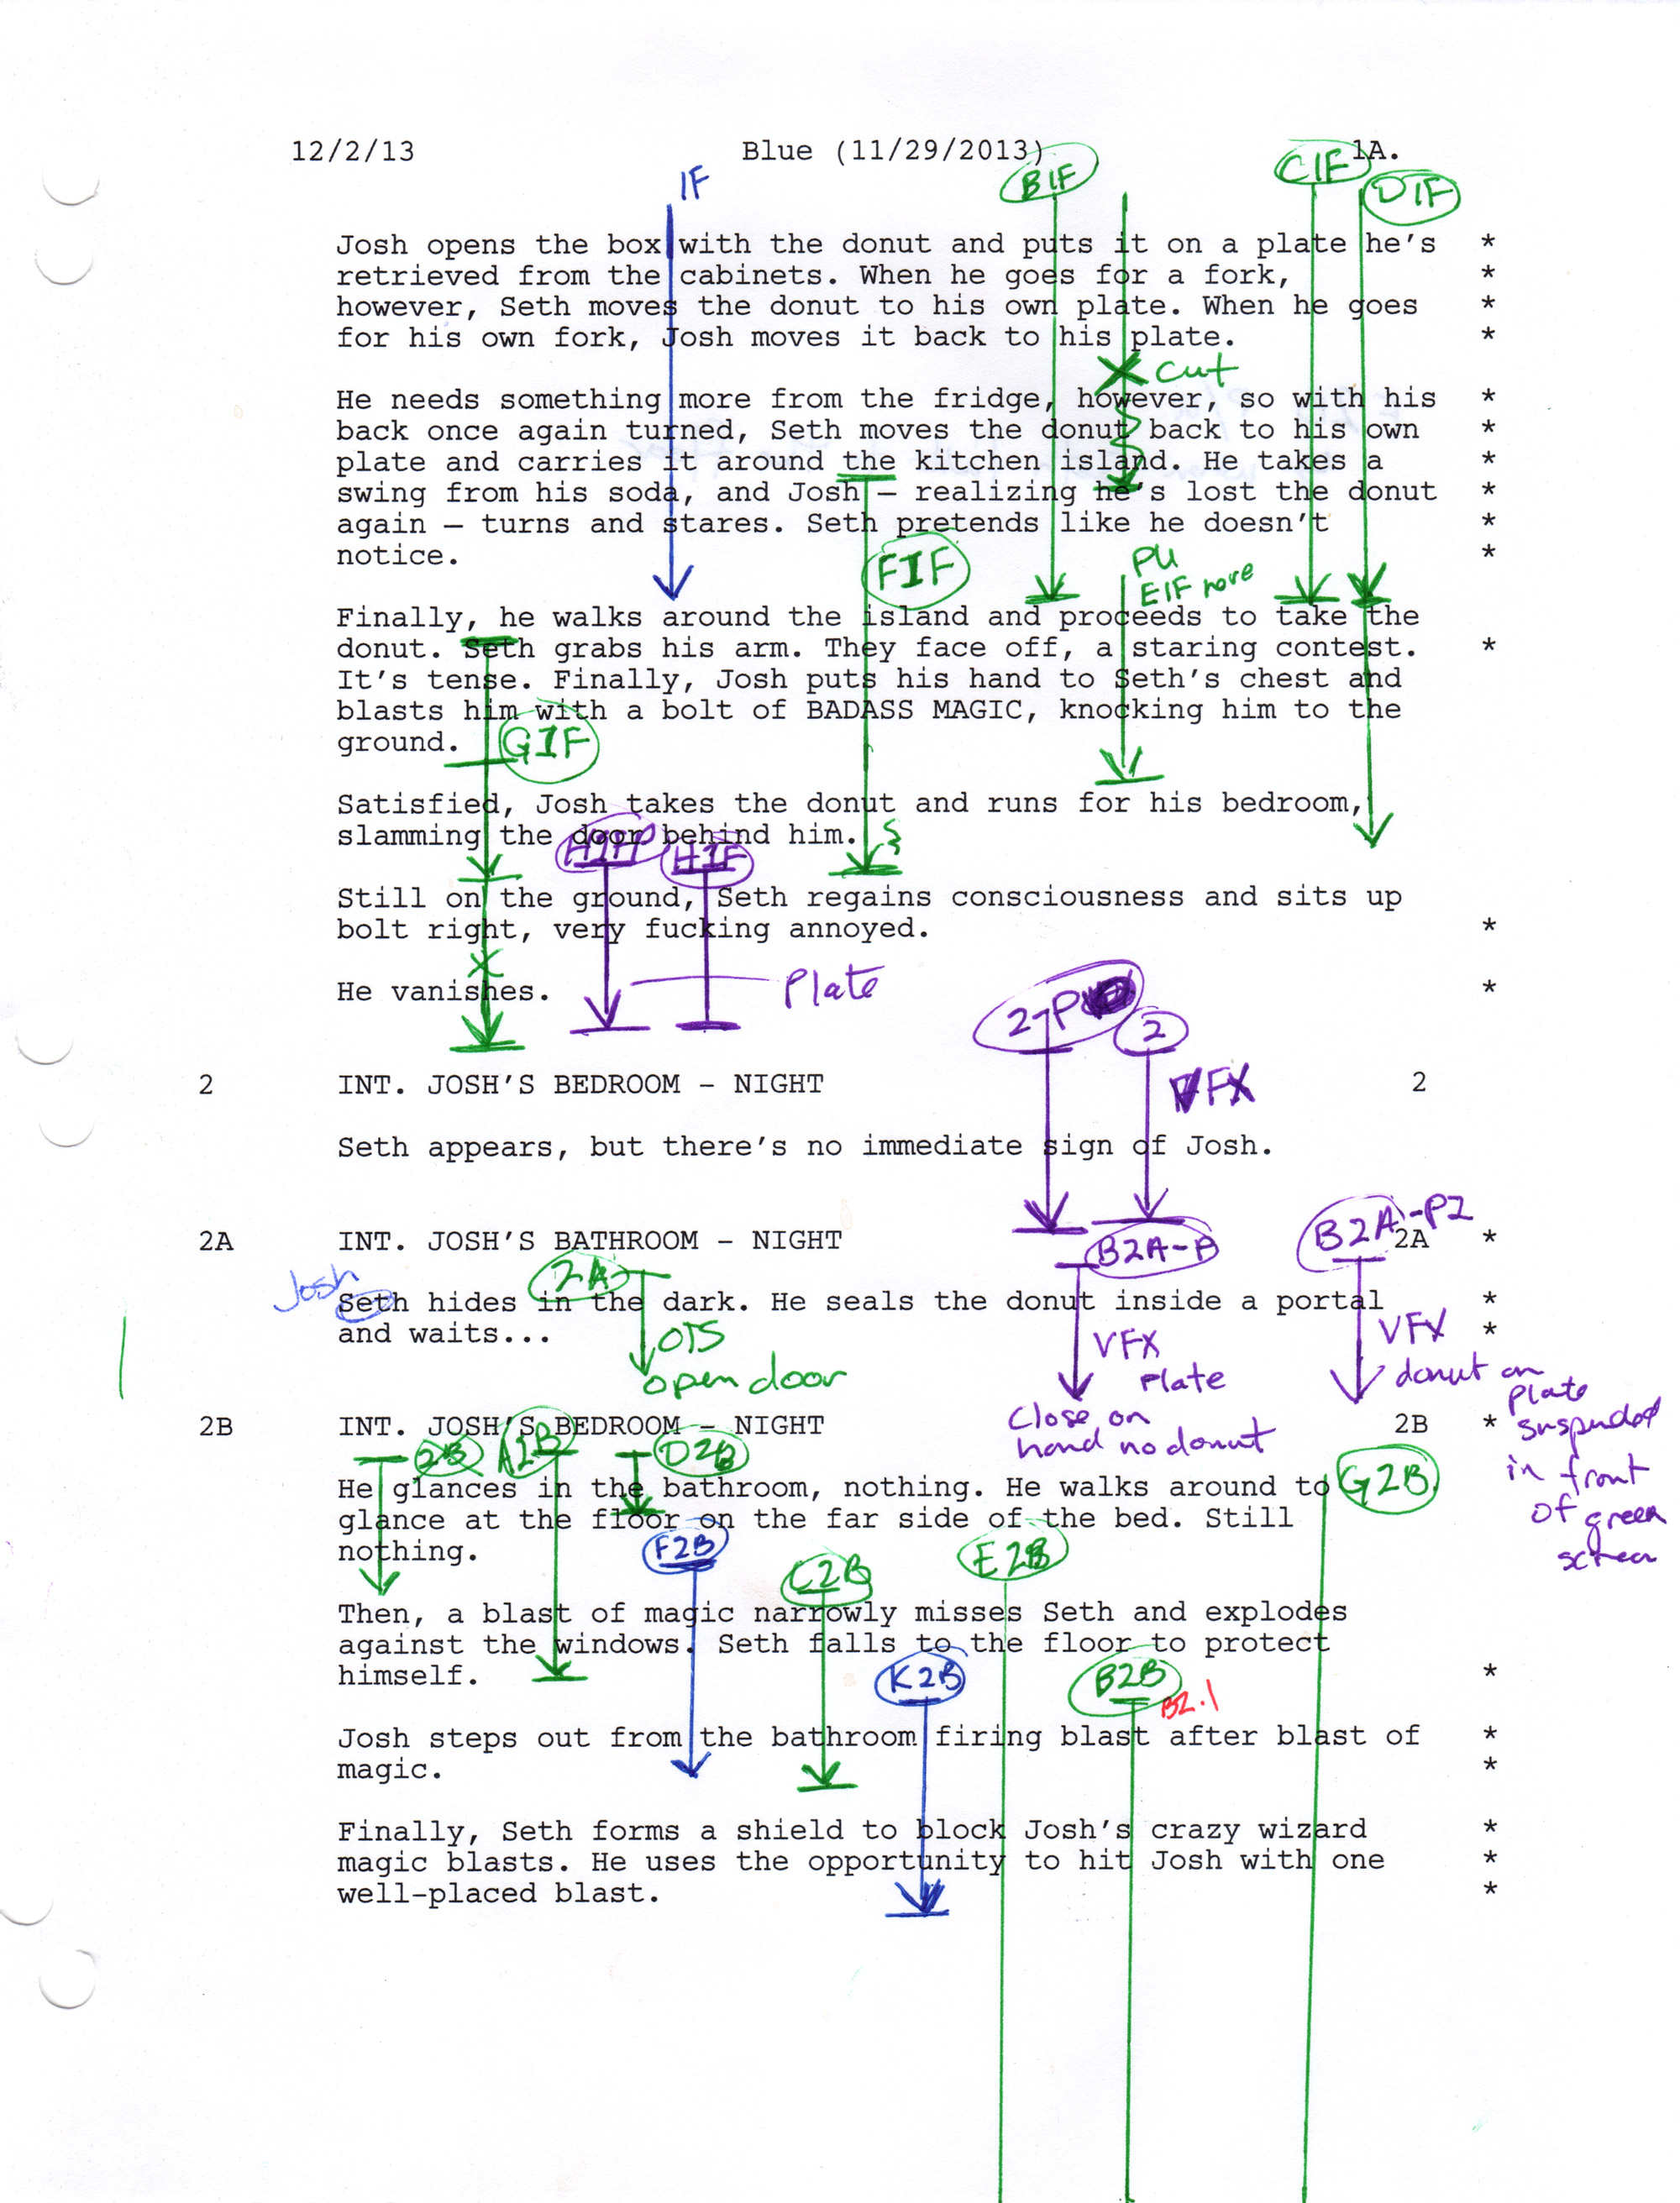 Script planning for the short film Roommates - a lined script